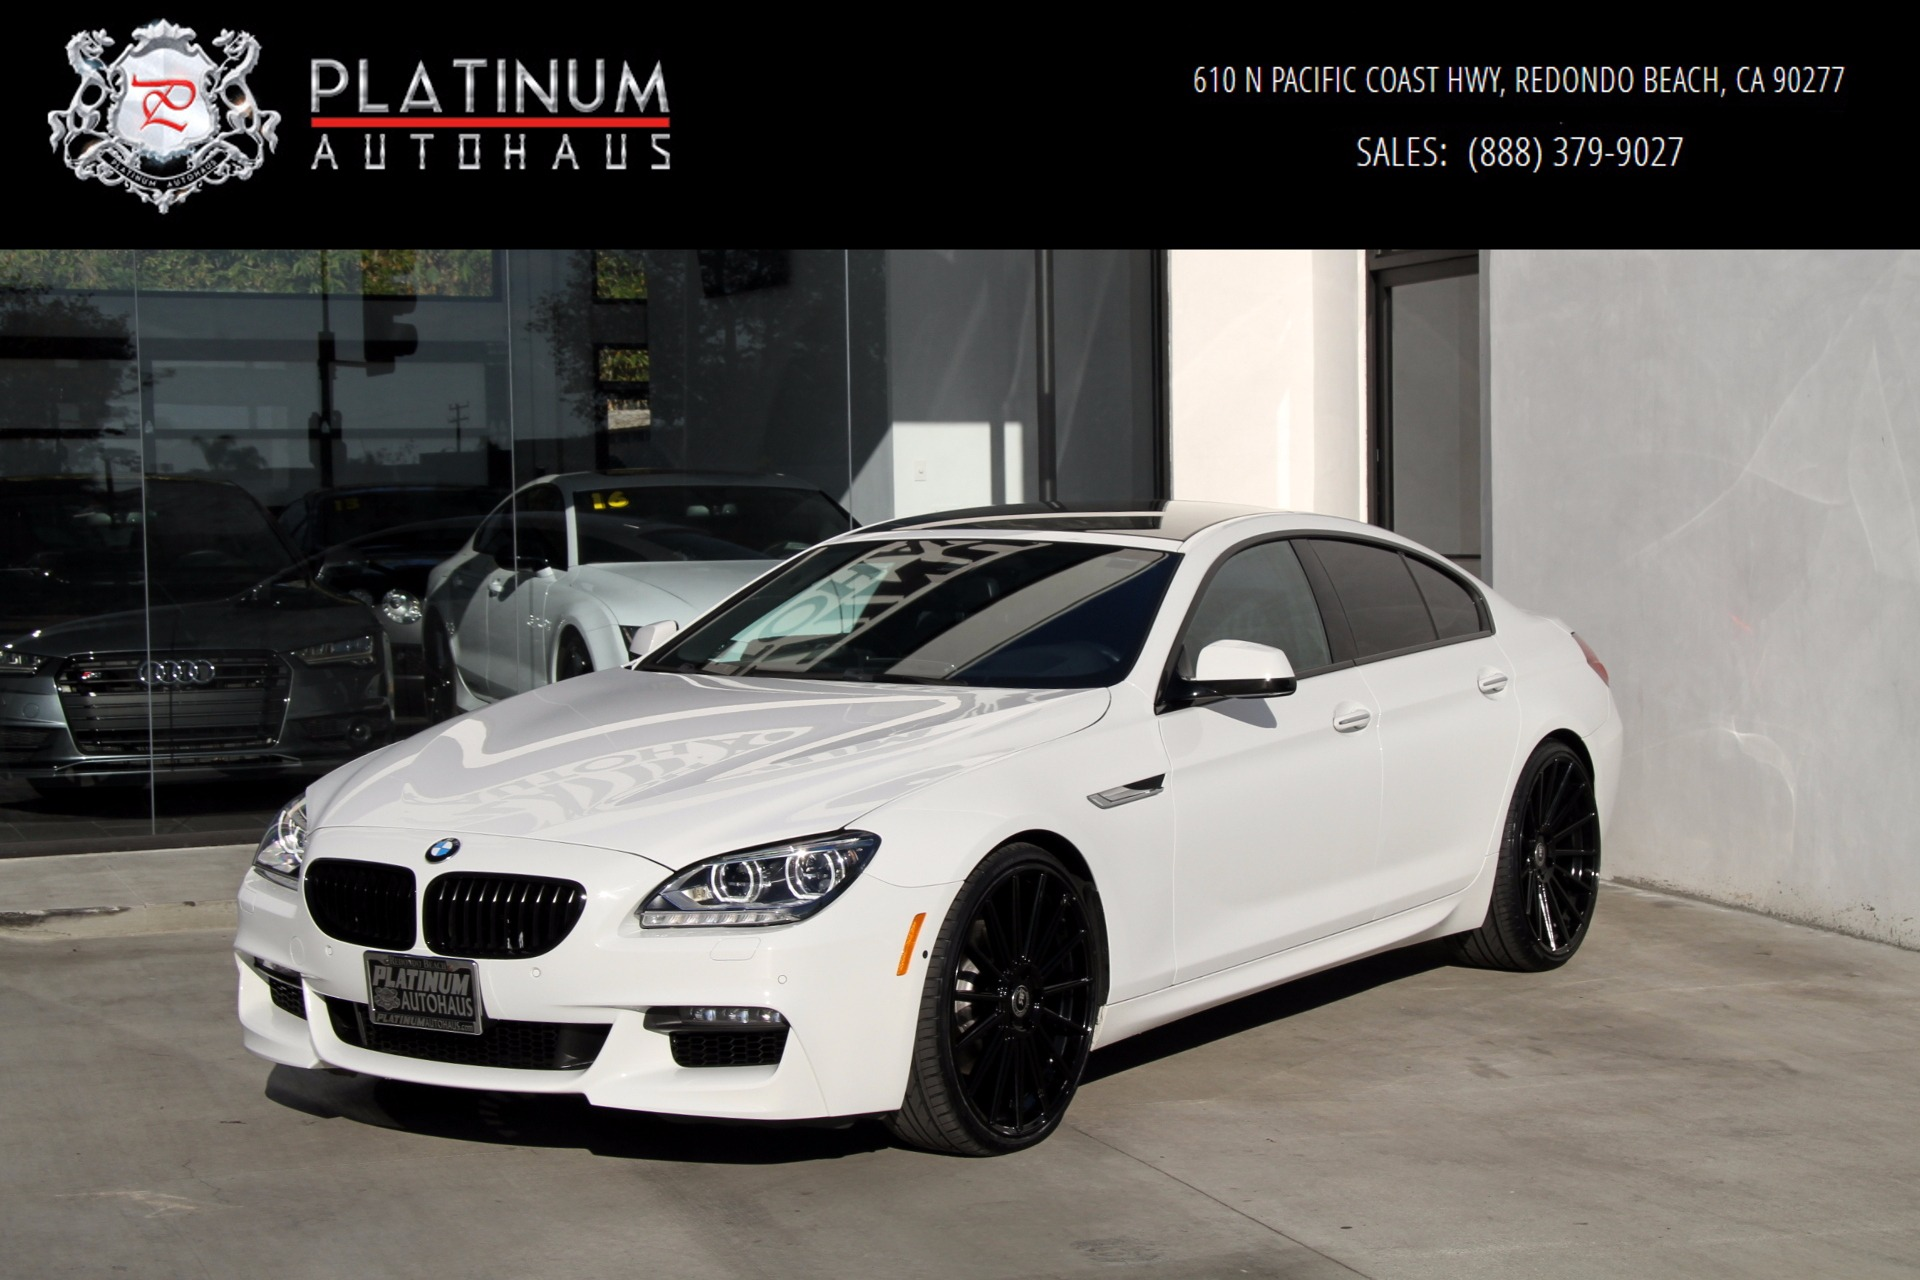 BMW Dealership Near Me >> 2015 BMW 6 Series 650i Gran Coupe Stock # 6043 for sale ...